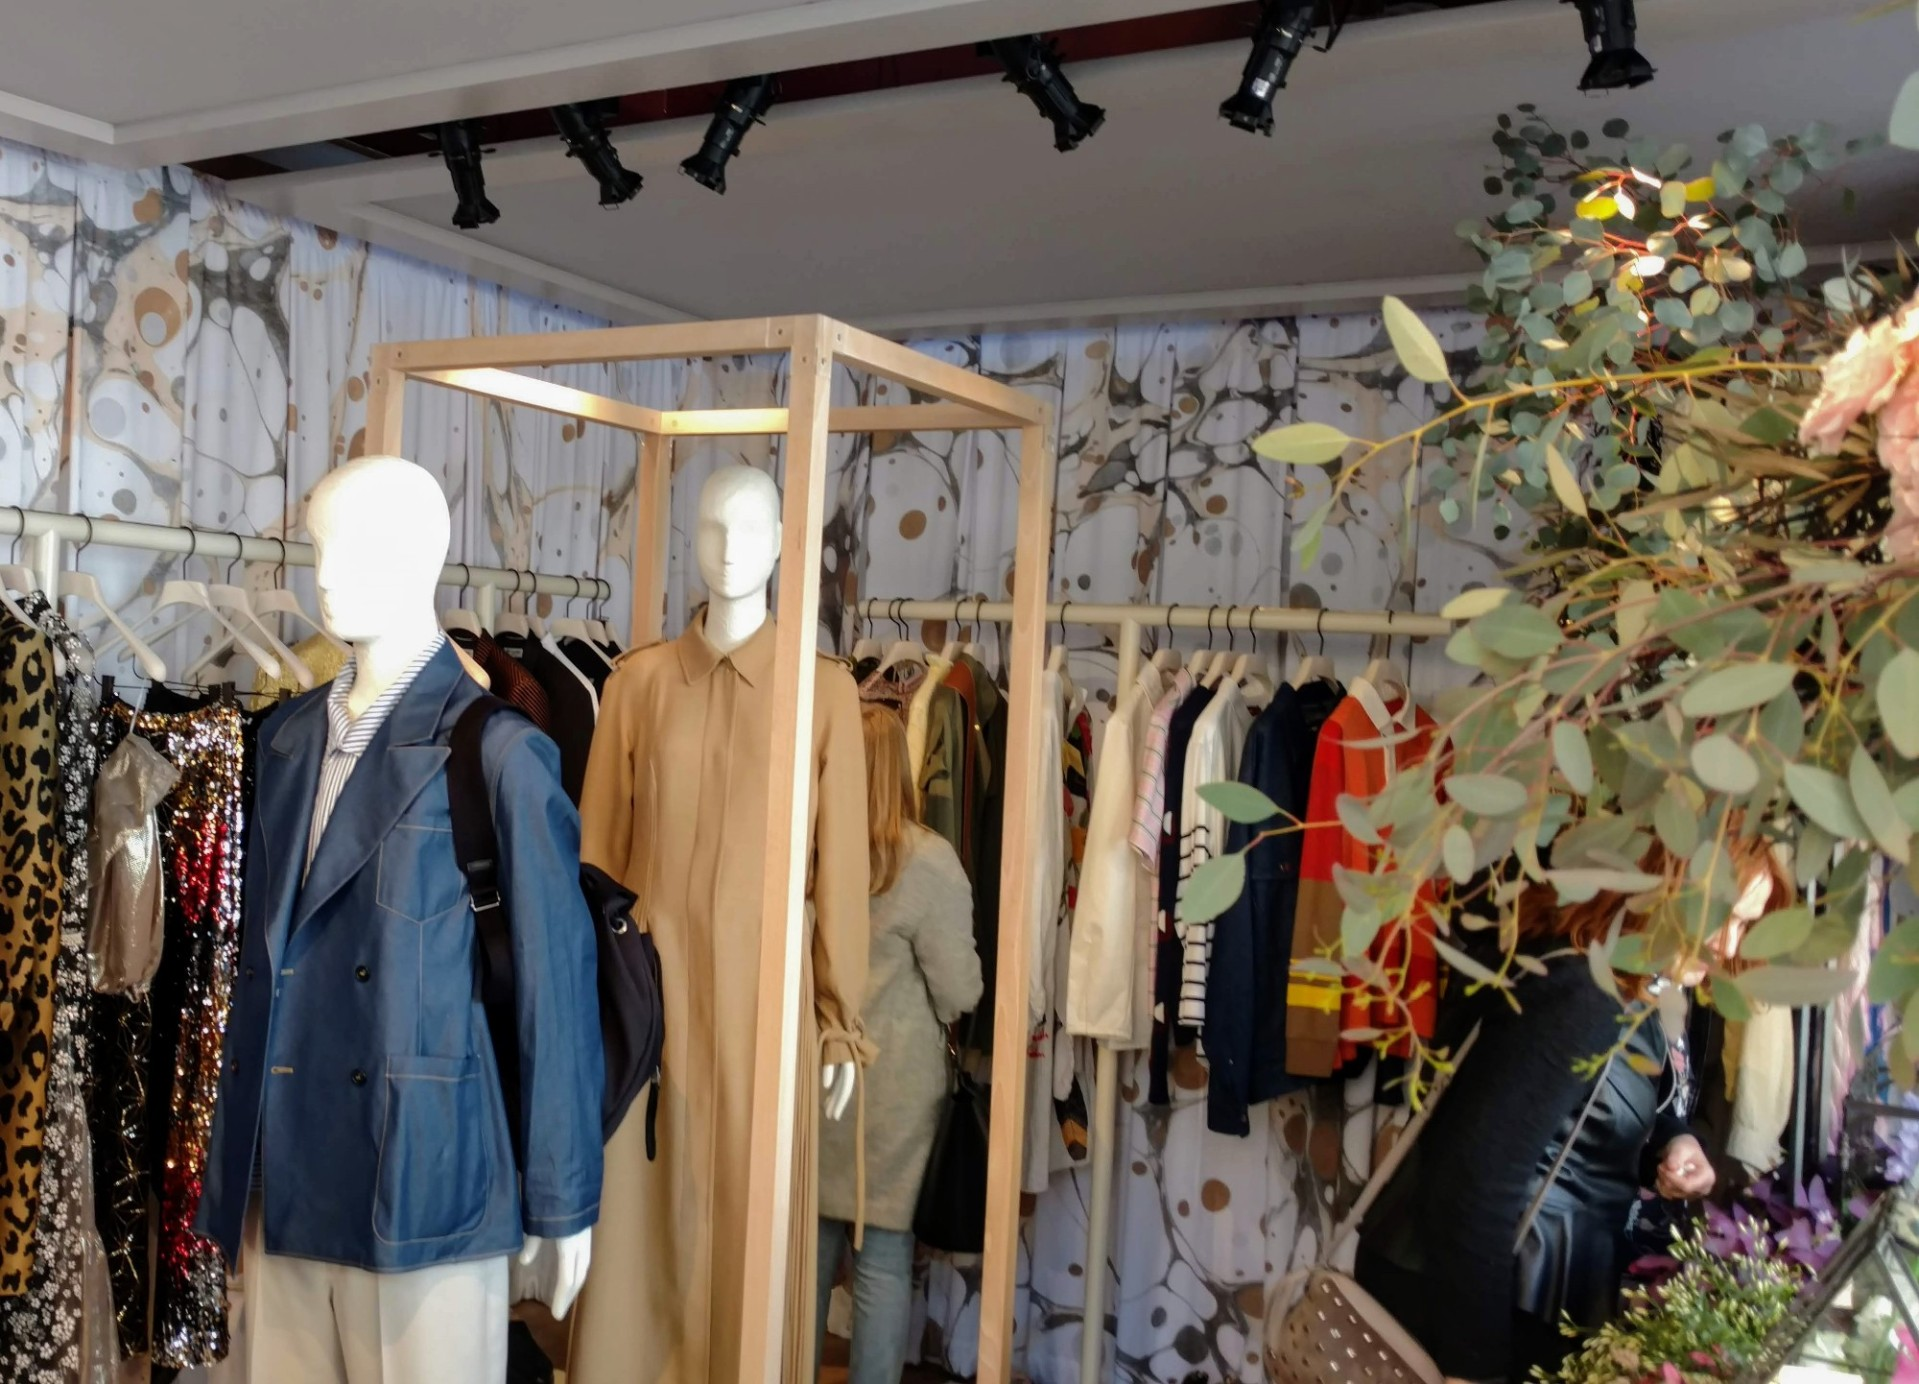 5 Carlos Place/matchesfashion.com Frieze L.A. 2019 | EDGExpo.com